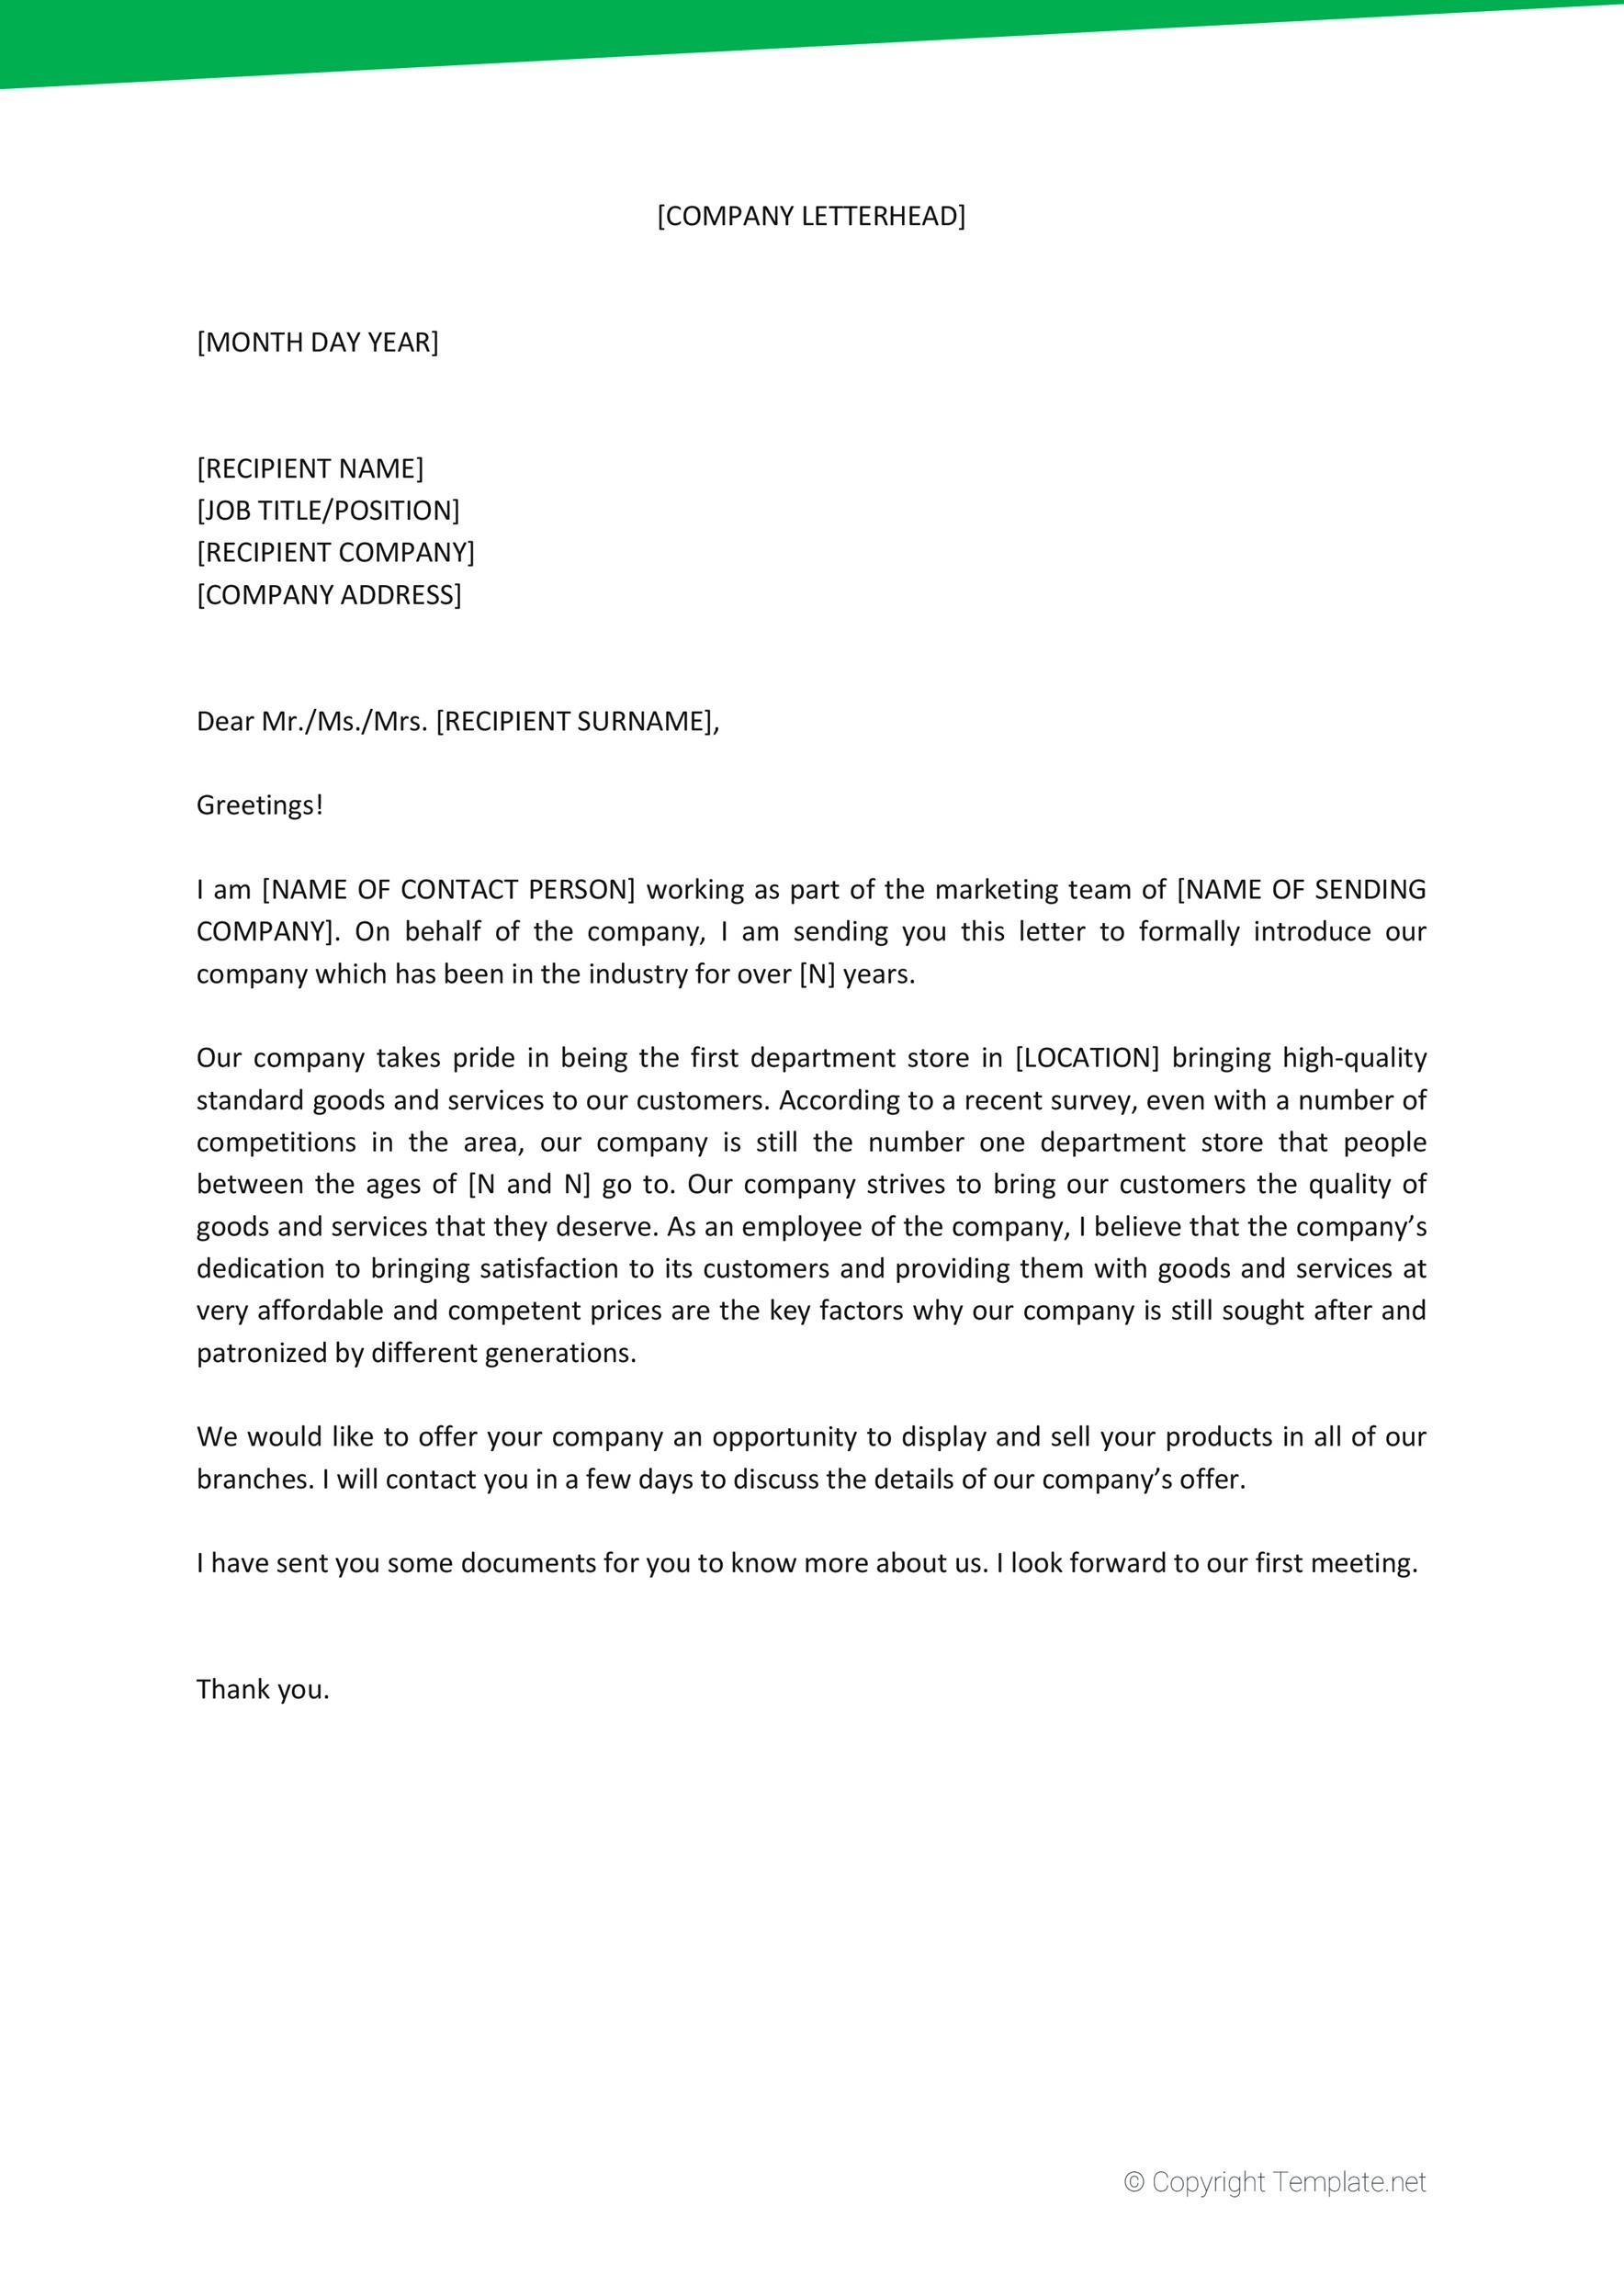 34 Free Business Introduction Letters PDF MS Word